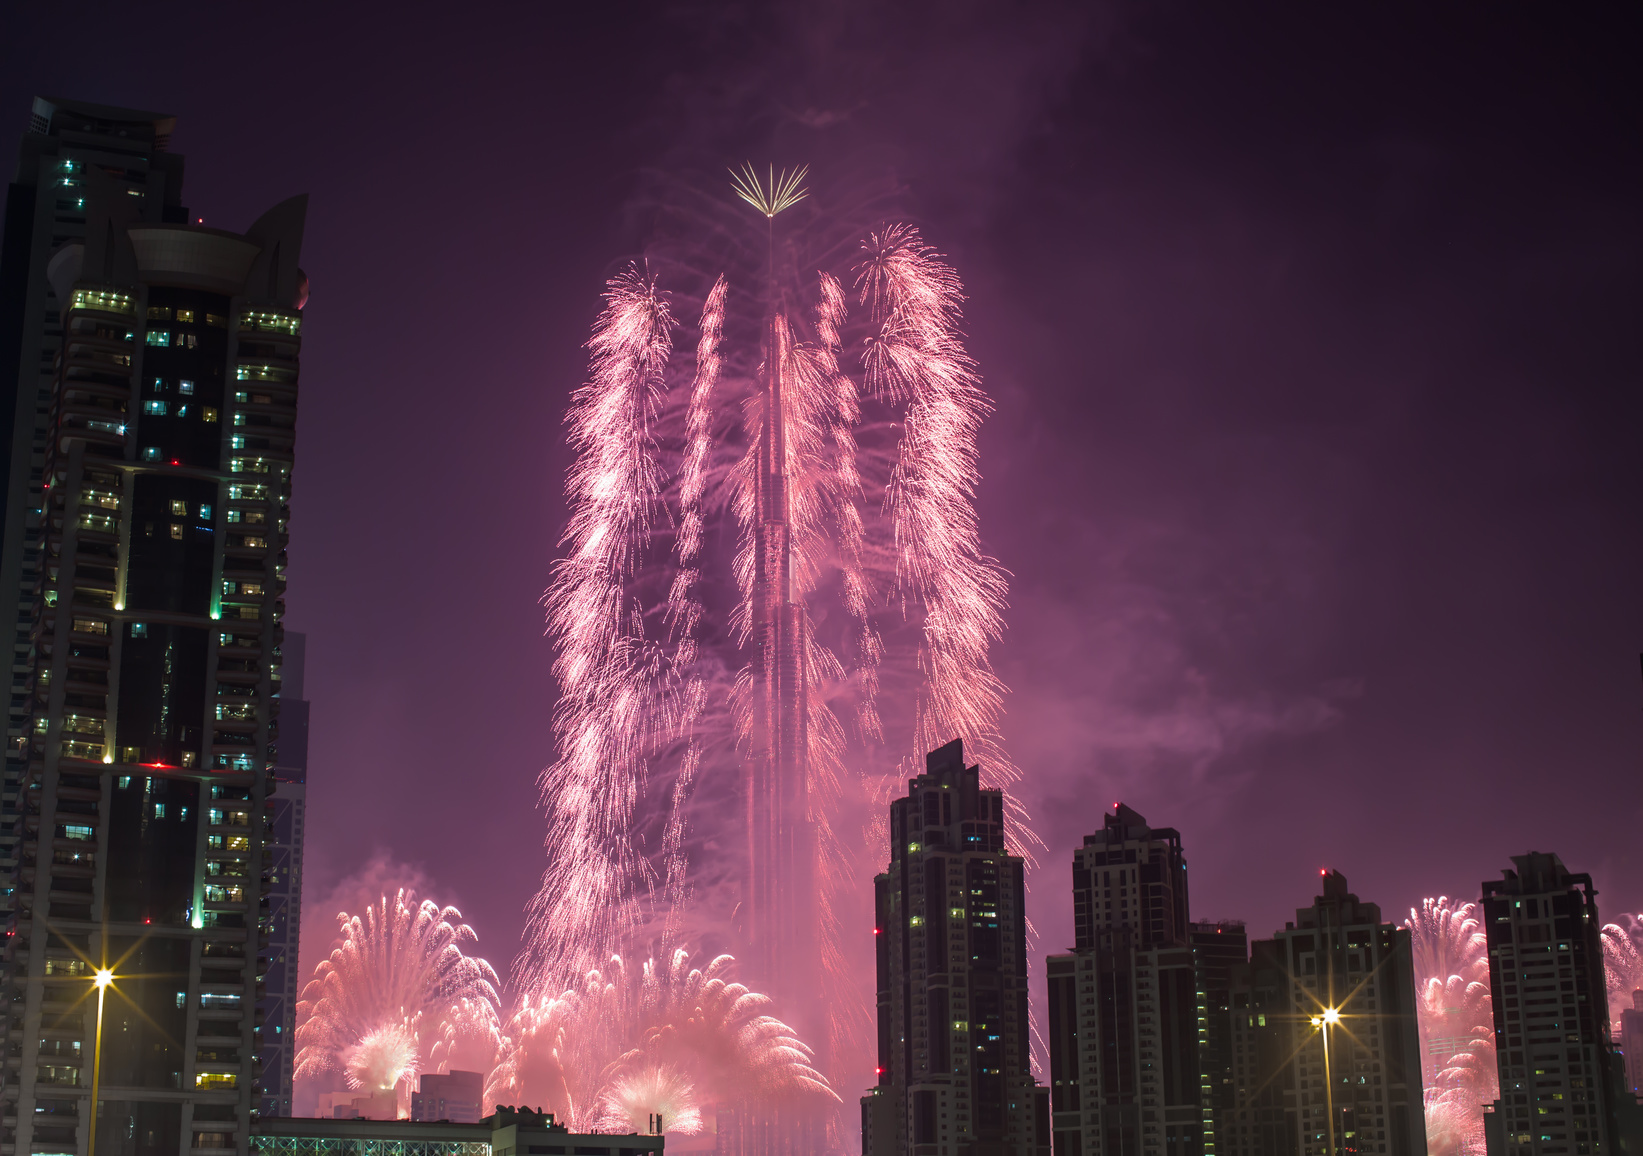 Cheap Ways to Celebrate New Year's in Dubai